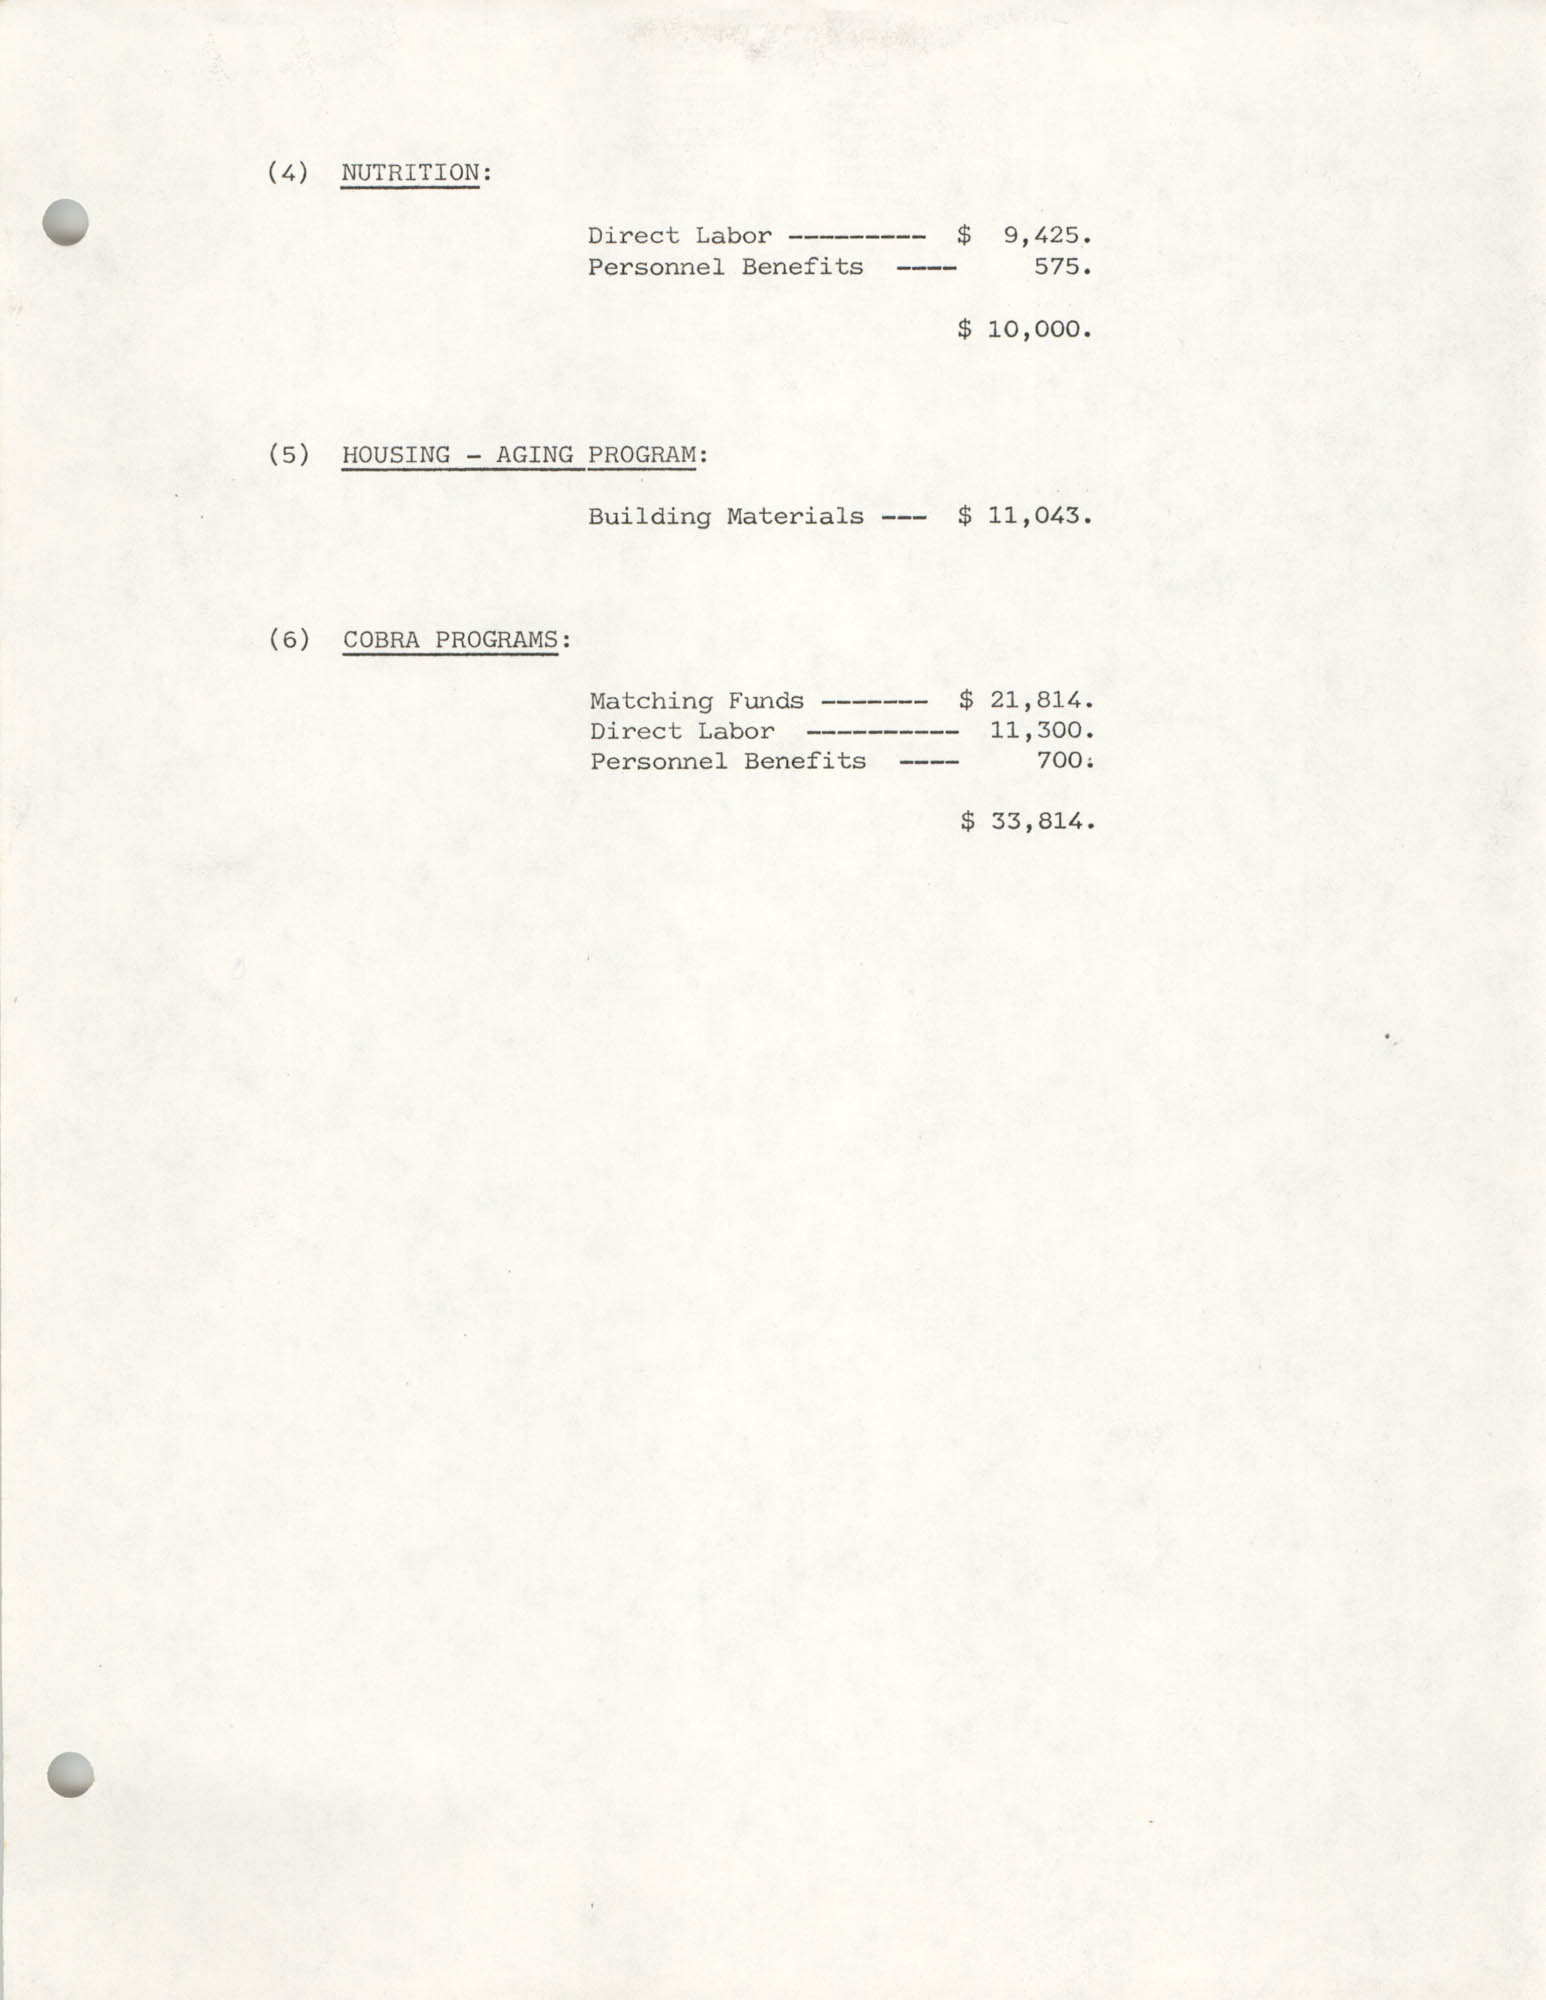 COBRA Budgetary Expenses, August 1978 to July 1979, Page 2